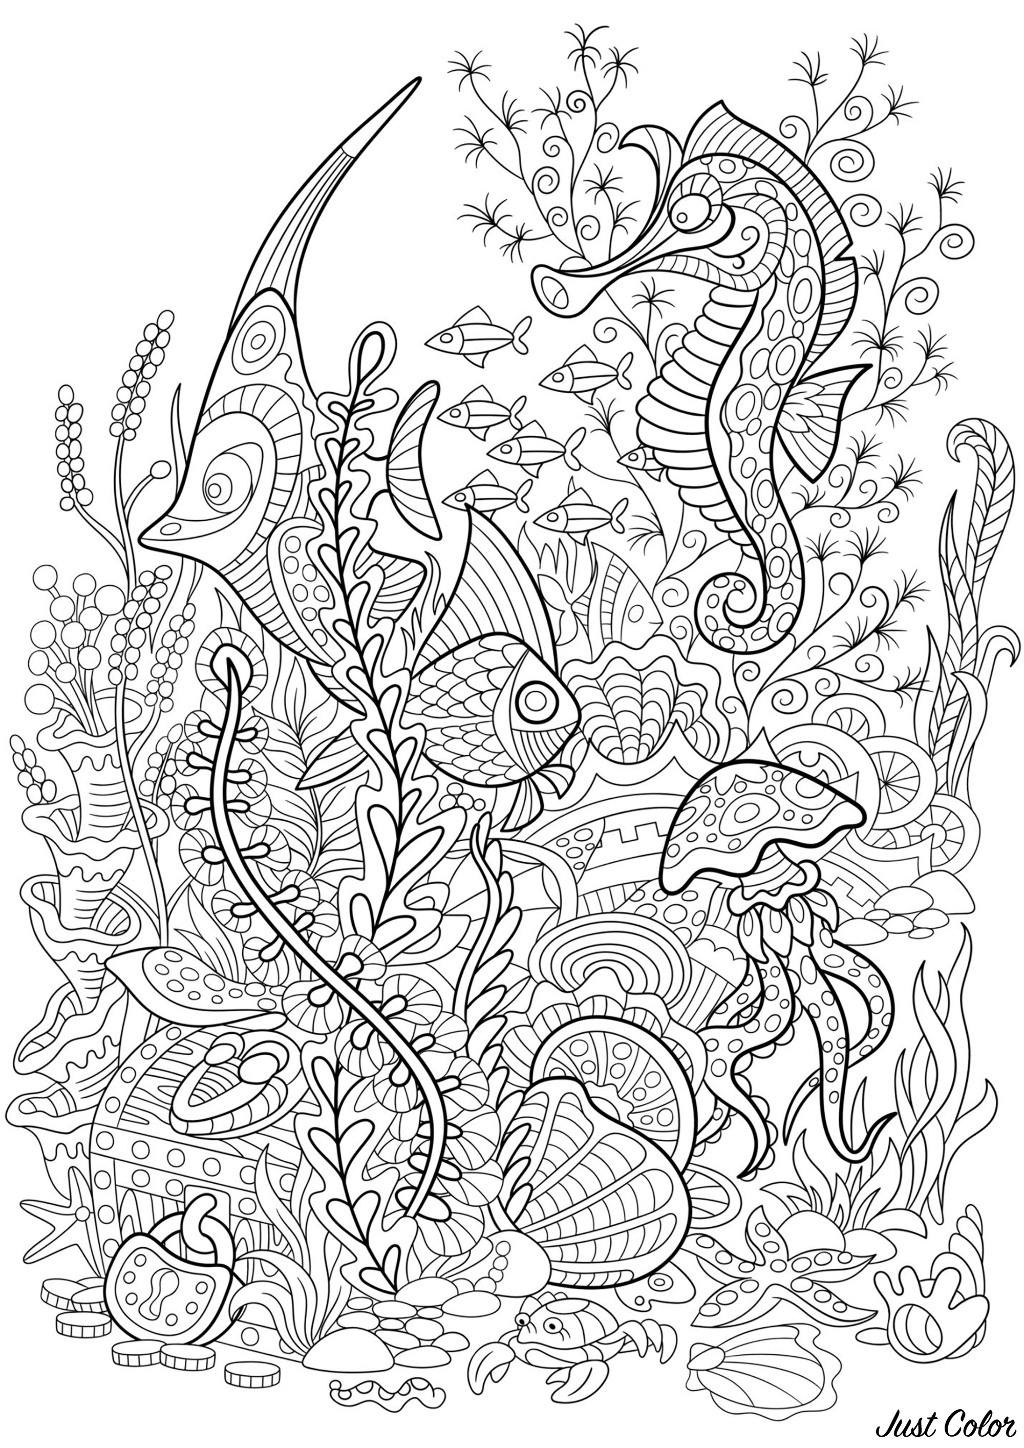 Seaworld Water Worlds Adult Coloring Pages